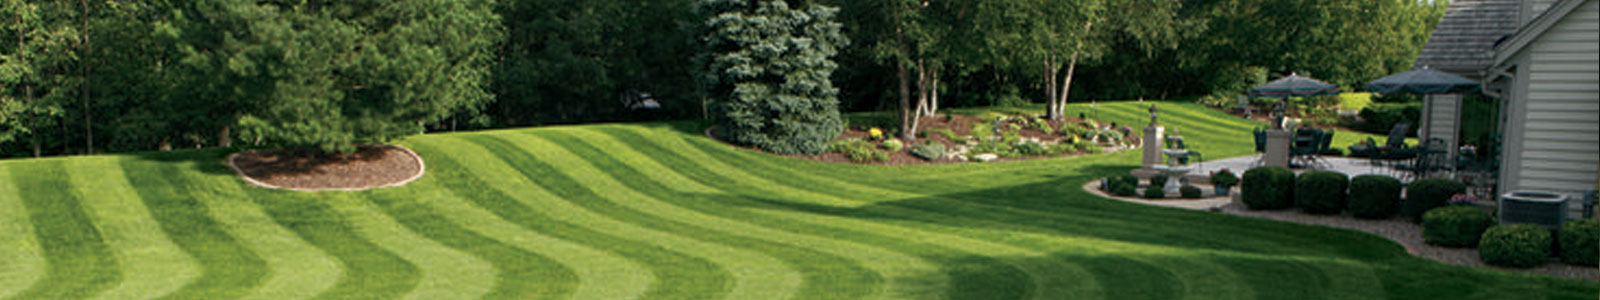 Cedar Hill Property Maintenance Lawn Mowing Service